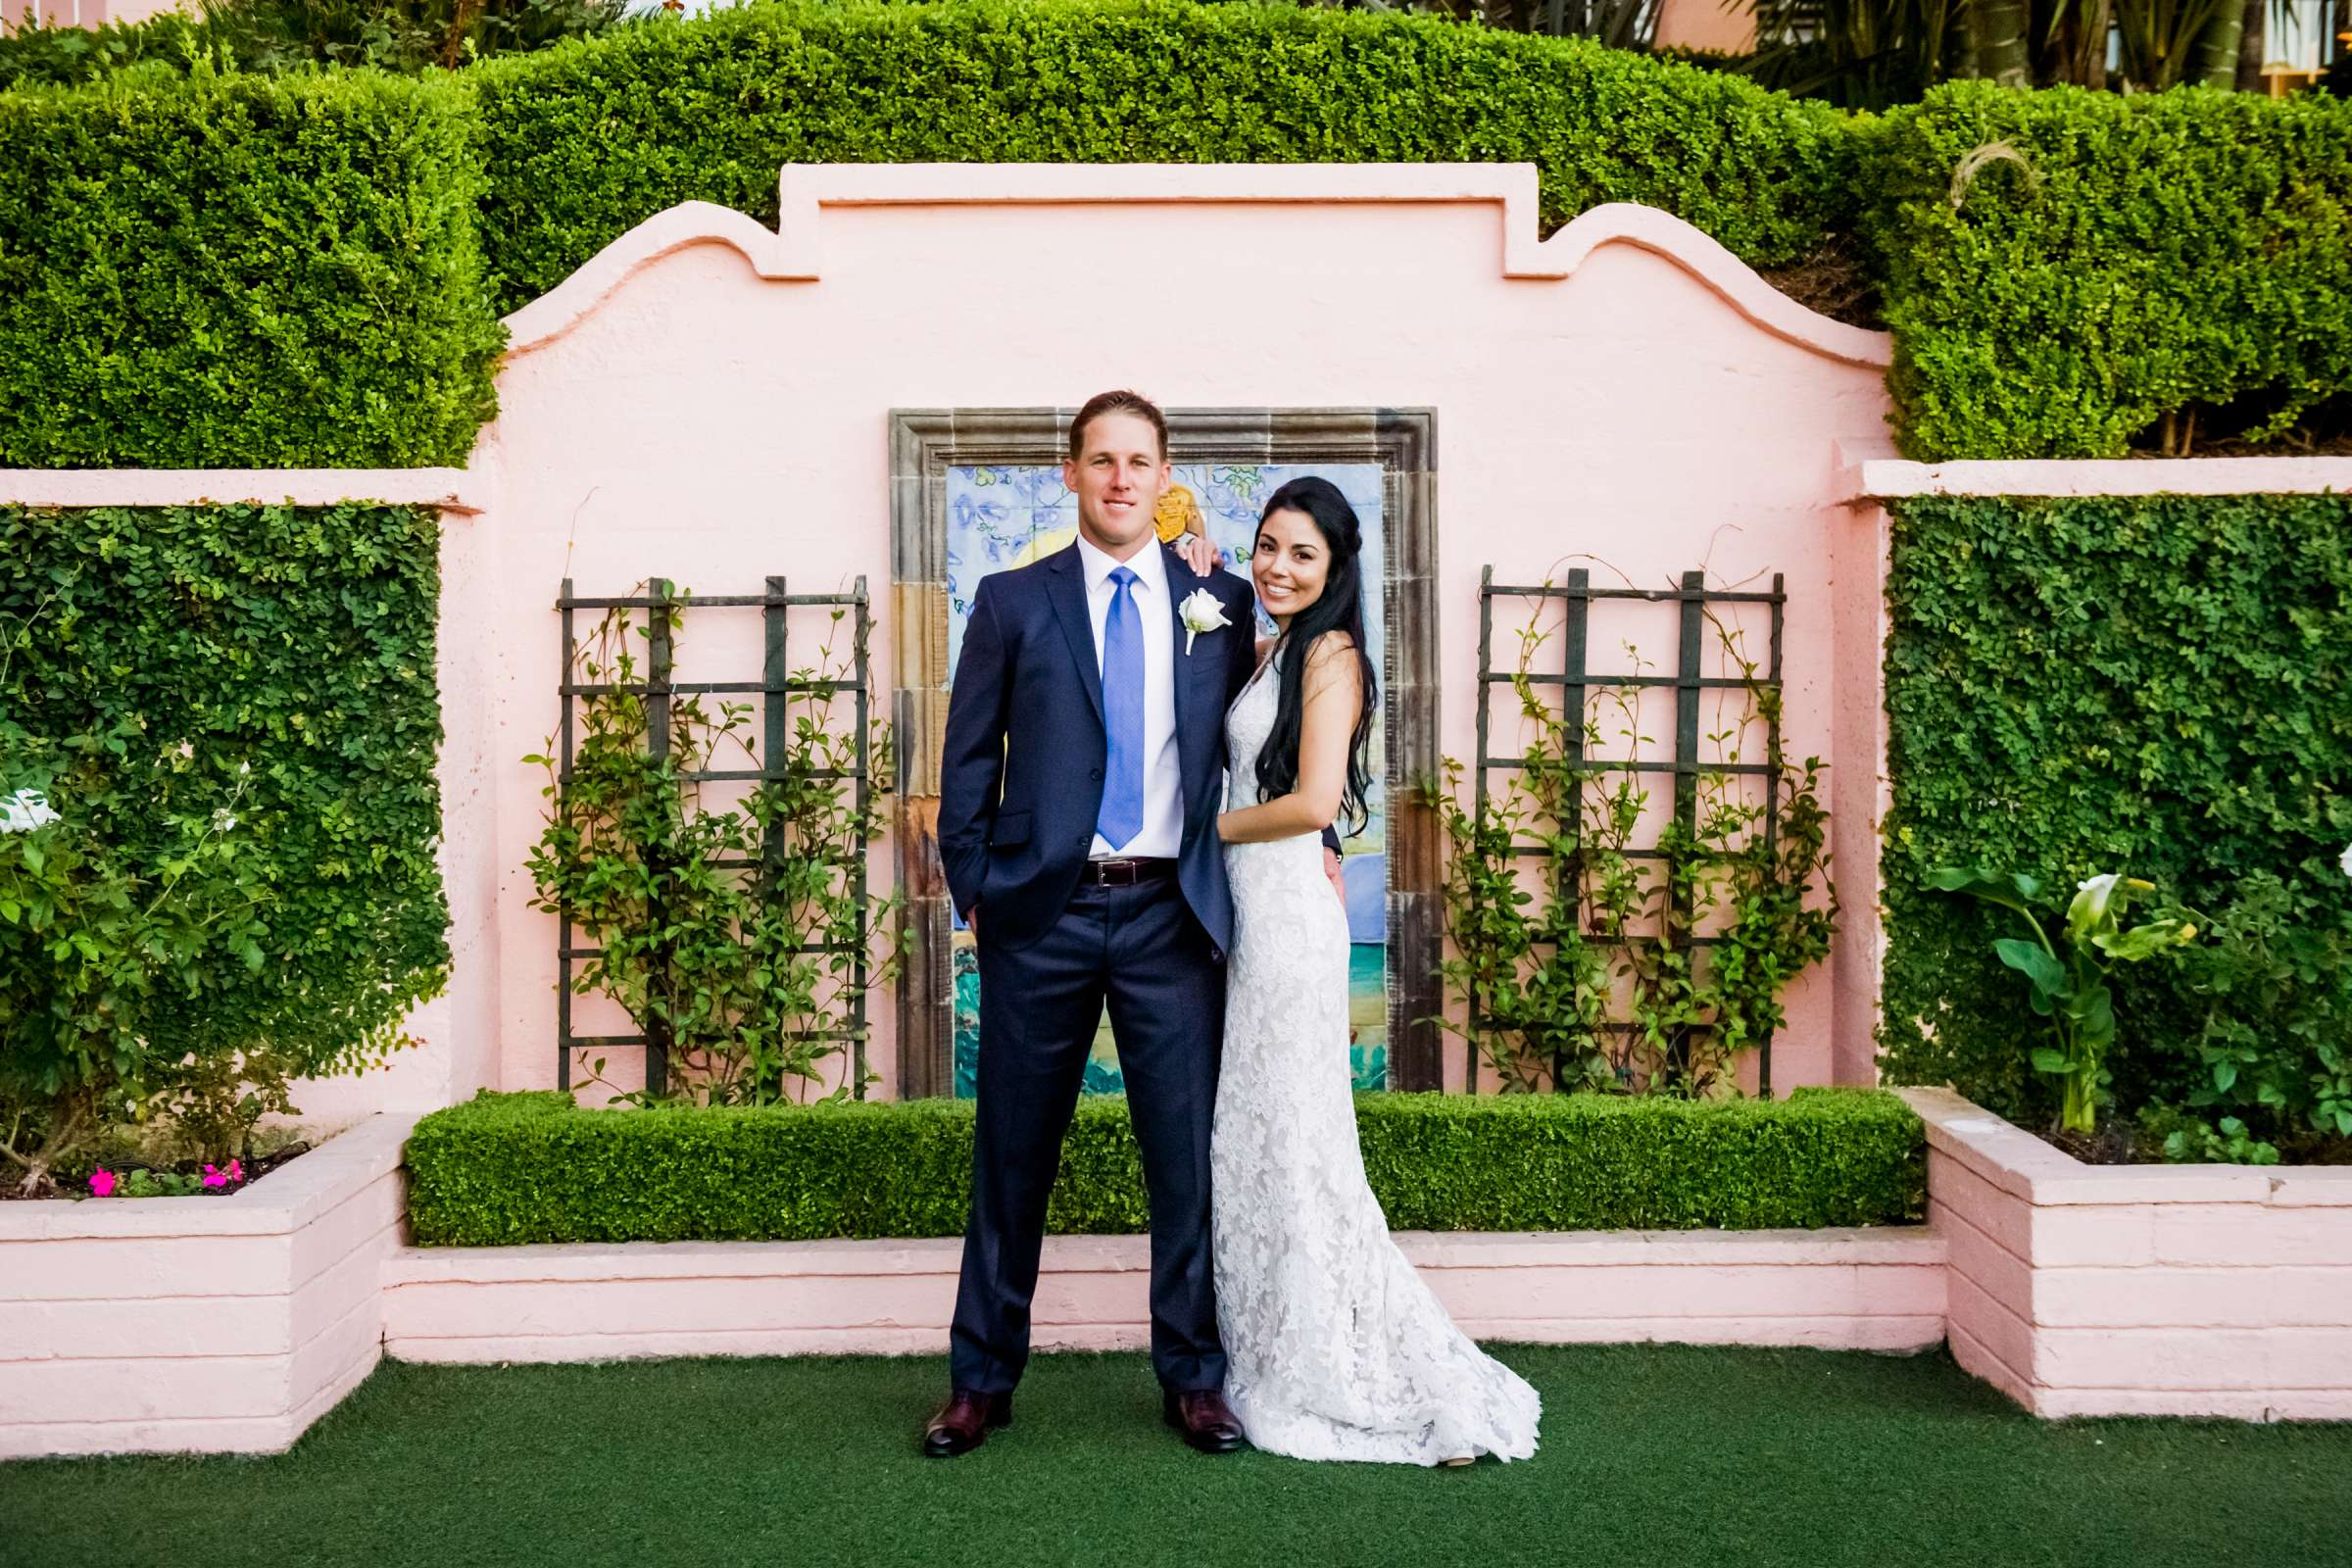 La Valencia Wedding coordinated by First Comes Love Weddings & Events, Lea and Nick Wedding Photo #1 by True Photography